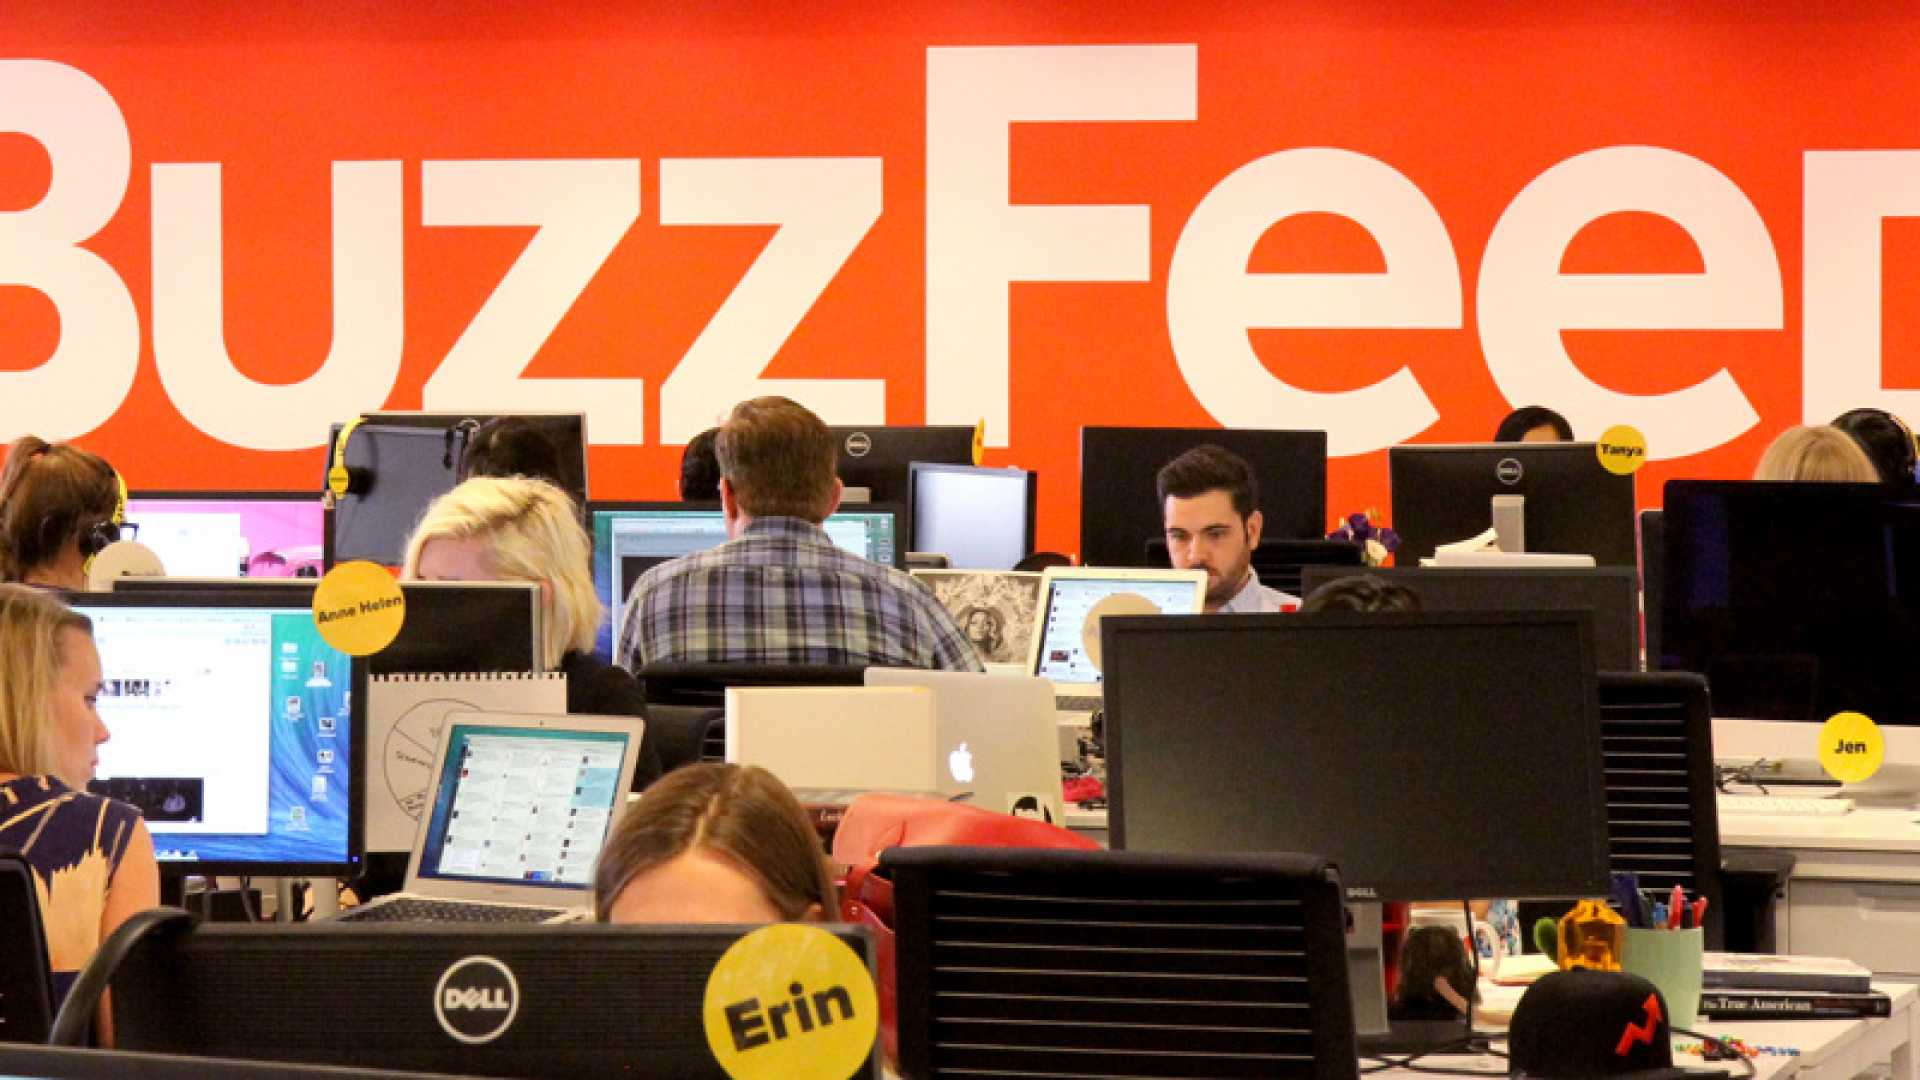 3 Insanely Life-Changing Productivity Tips From Buzzfeed's Data Guru